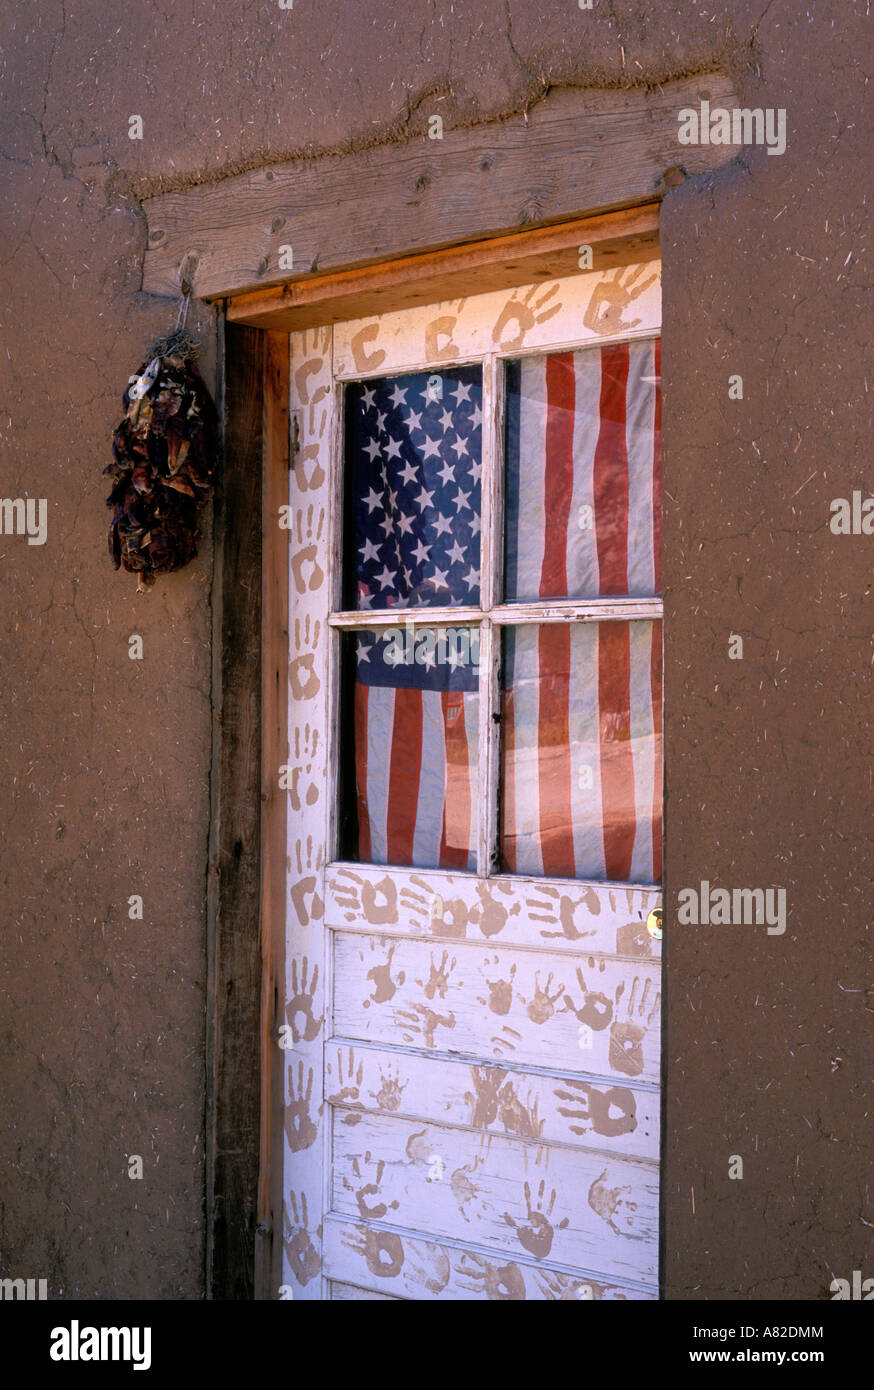 American flag and hand prints on the door of an adobe house Taos Pueblo New Mexico & American flag and hand prints on the door of an adobe house Taos ...